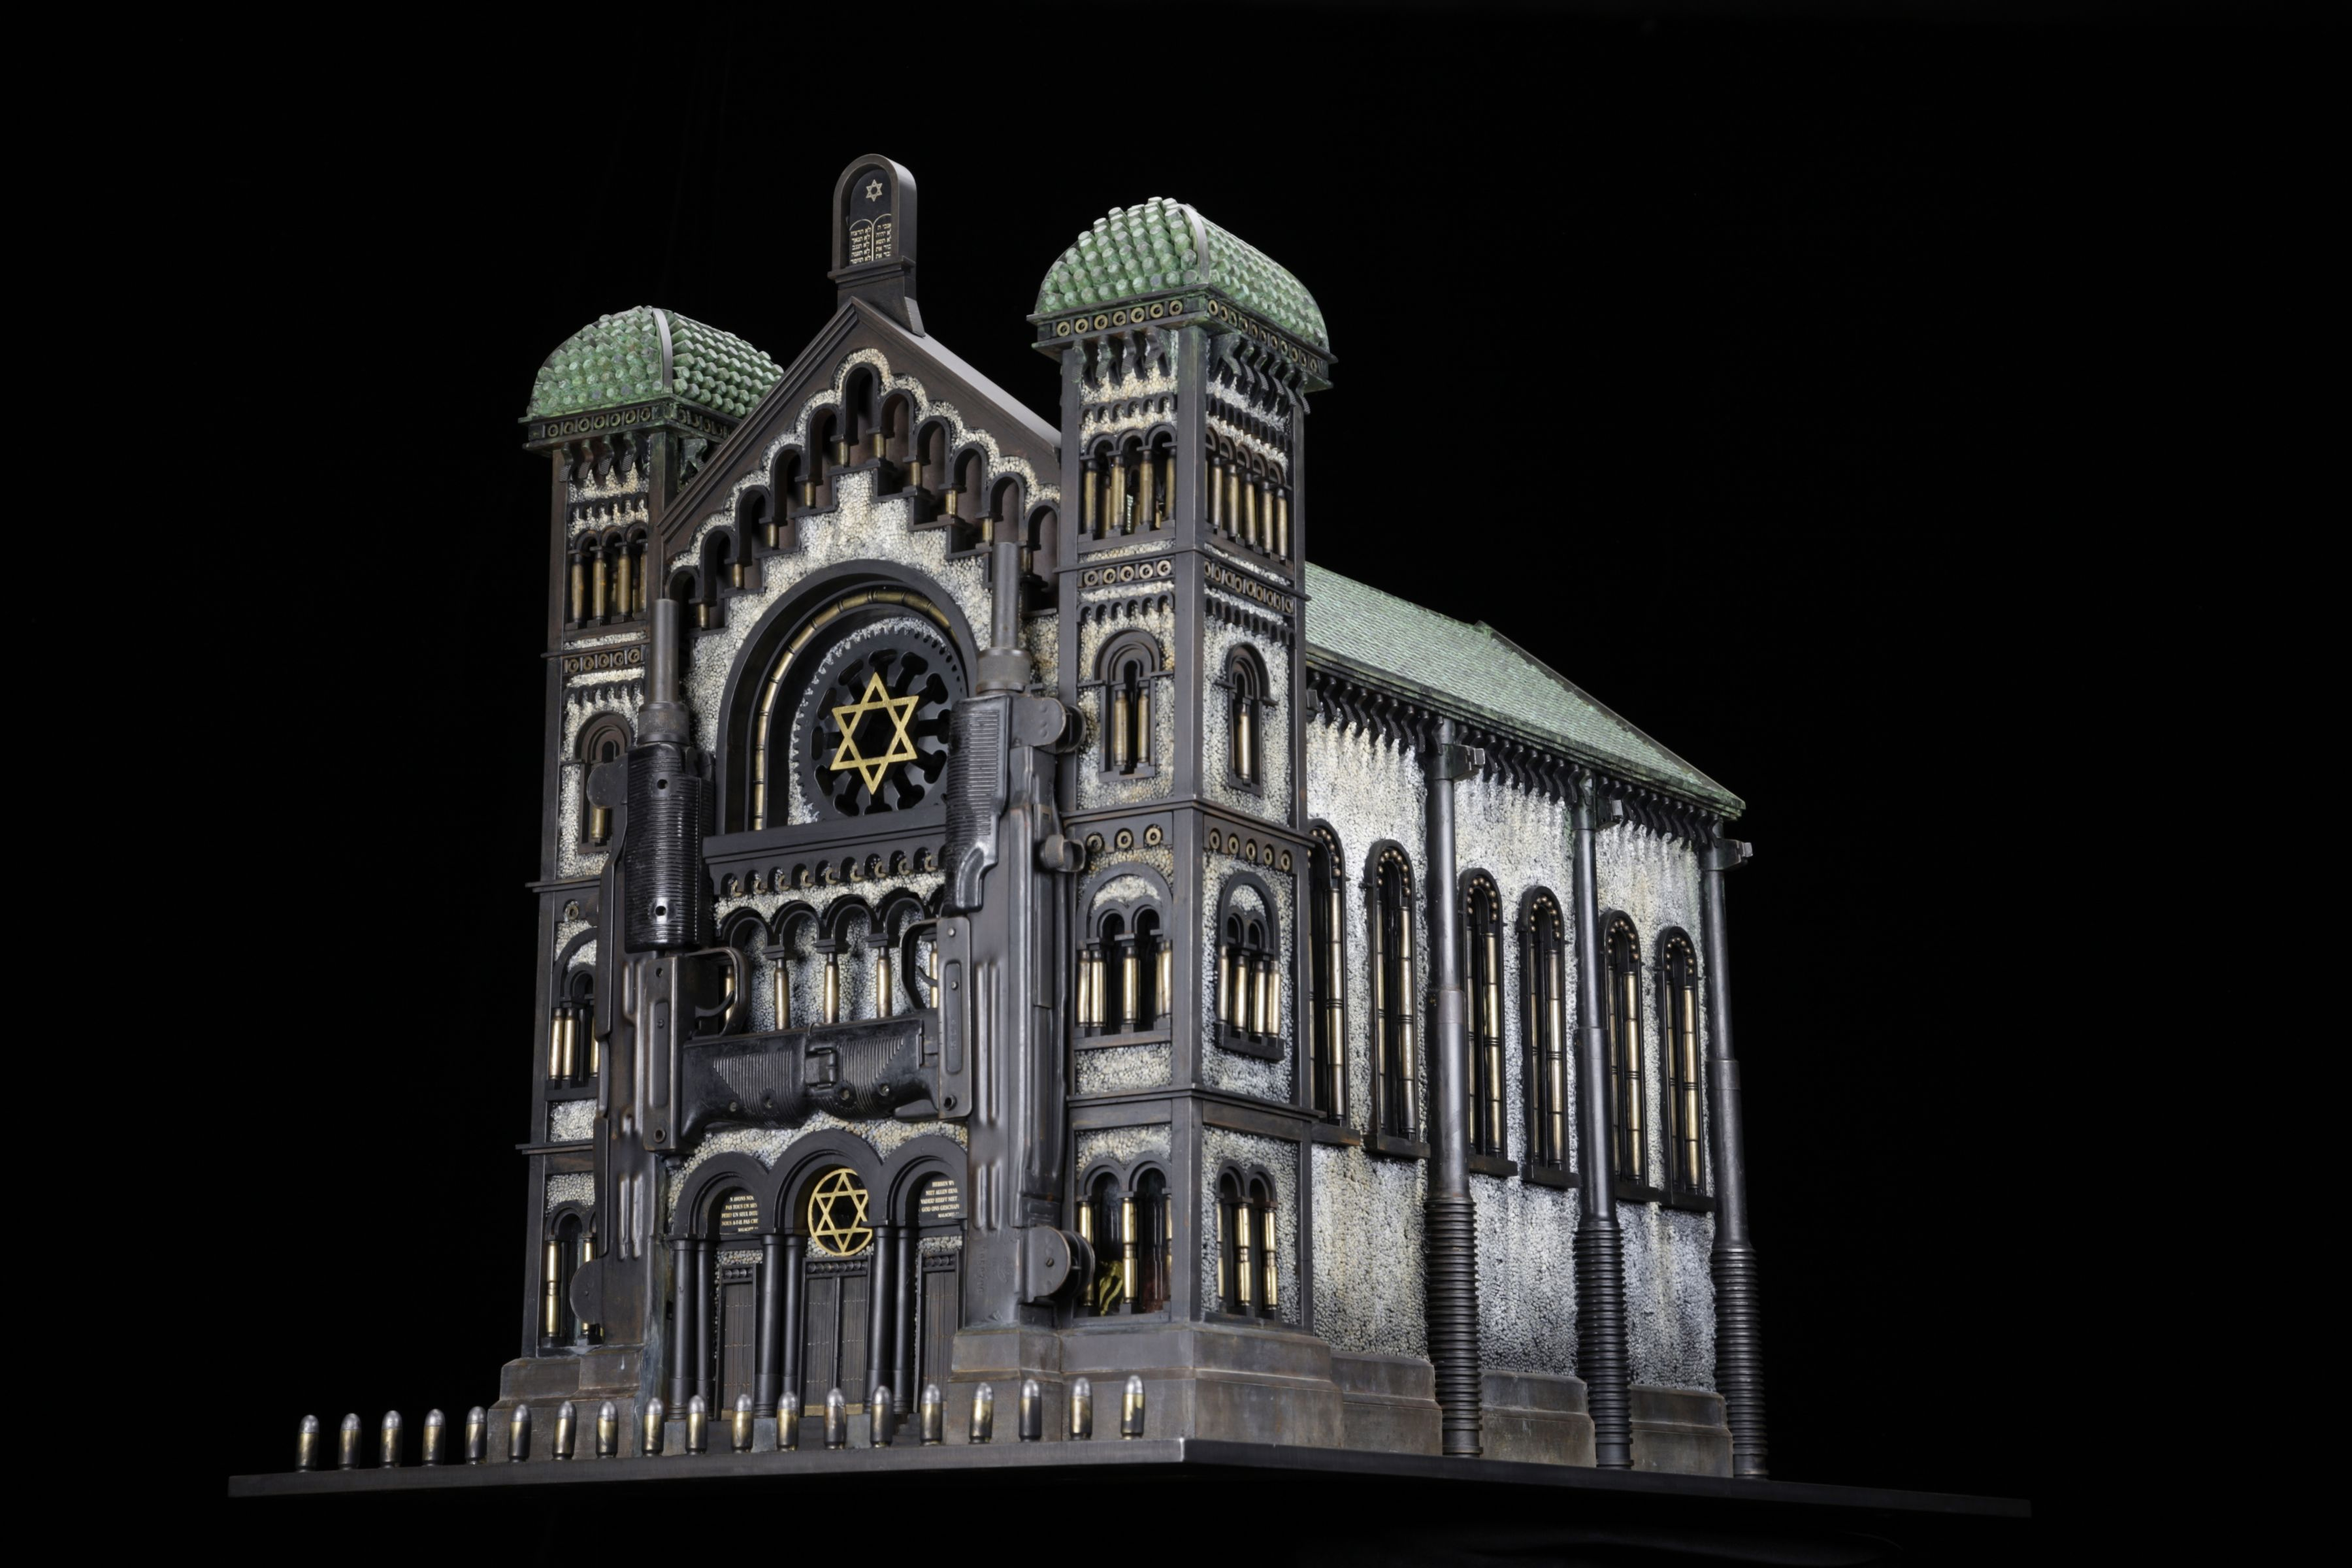 Al Farrow, Synagogue V (After the great Synagogue of Brussels), 2012, guns, gun parts, steel, bullets, shell casings, lead shot, glass, 31 ½ x 26 x 42 ½ inches